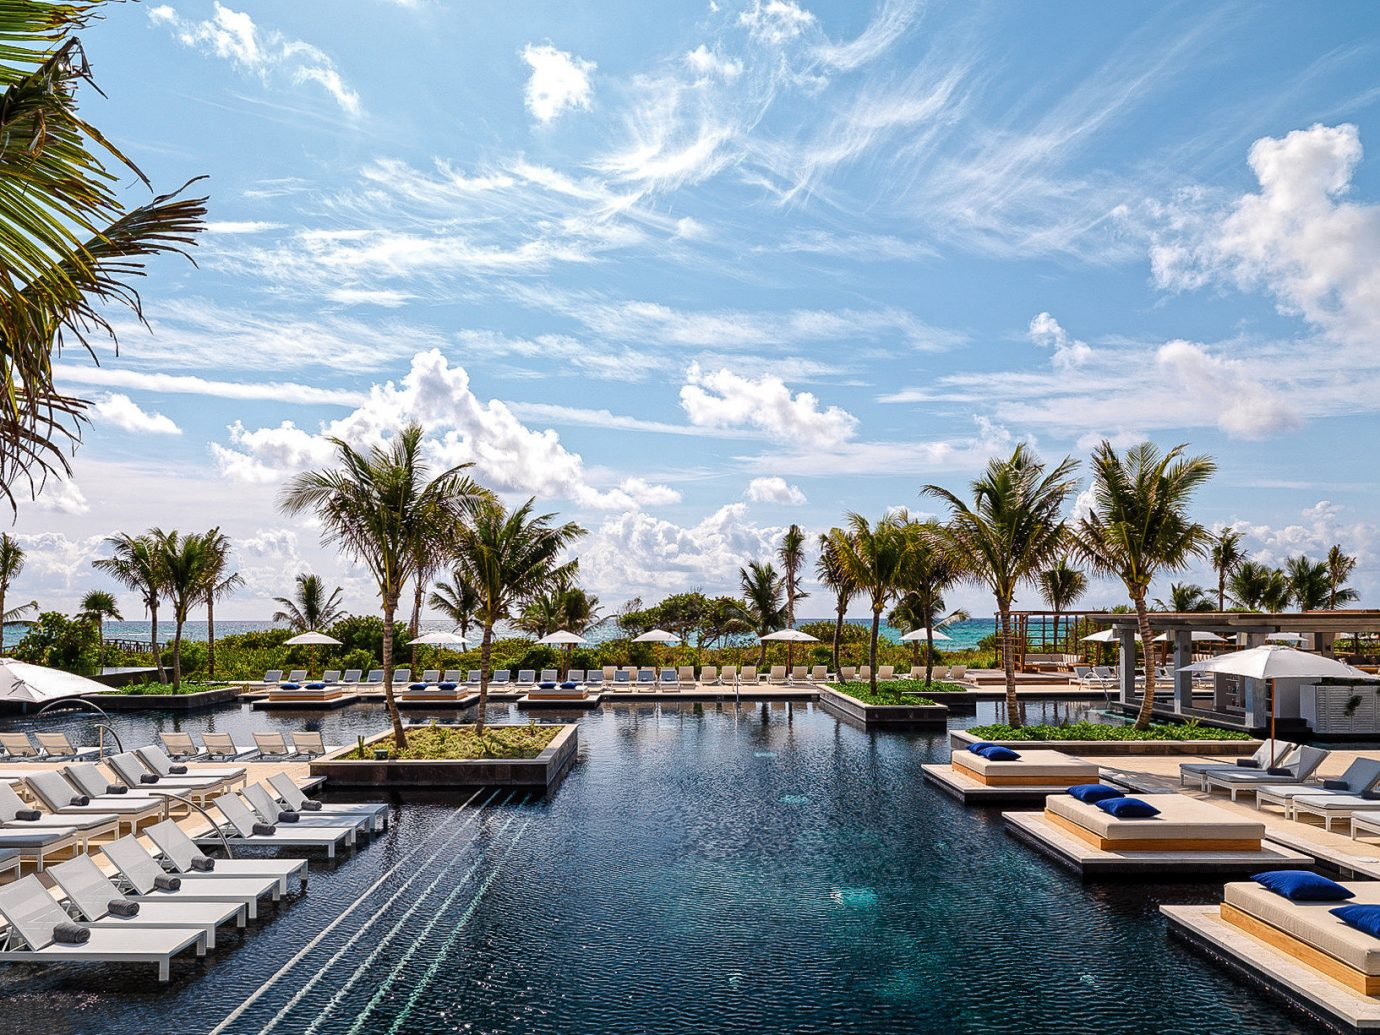 Boutique Hotels Hotels Luxury Travel sky outdoor water tree Boat Resort waterway swimming pool palm tree arecales leisure marina reflection dock vacation tropics real estate tourism docked estate resort town caribbean condominium Sea cloud hotel plant lined several